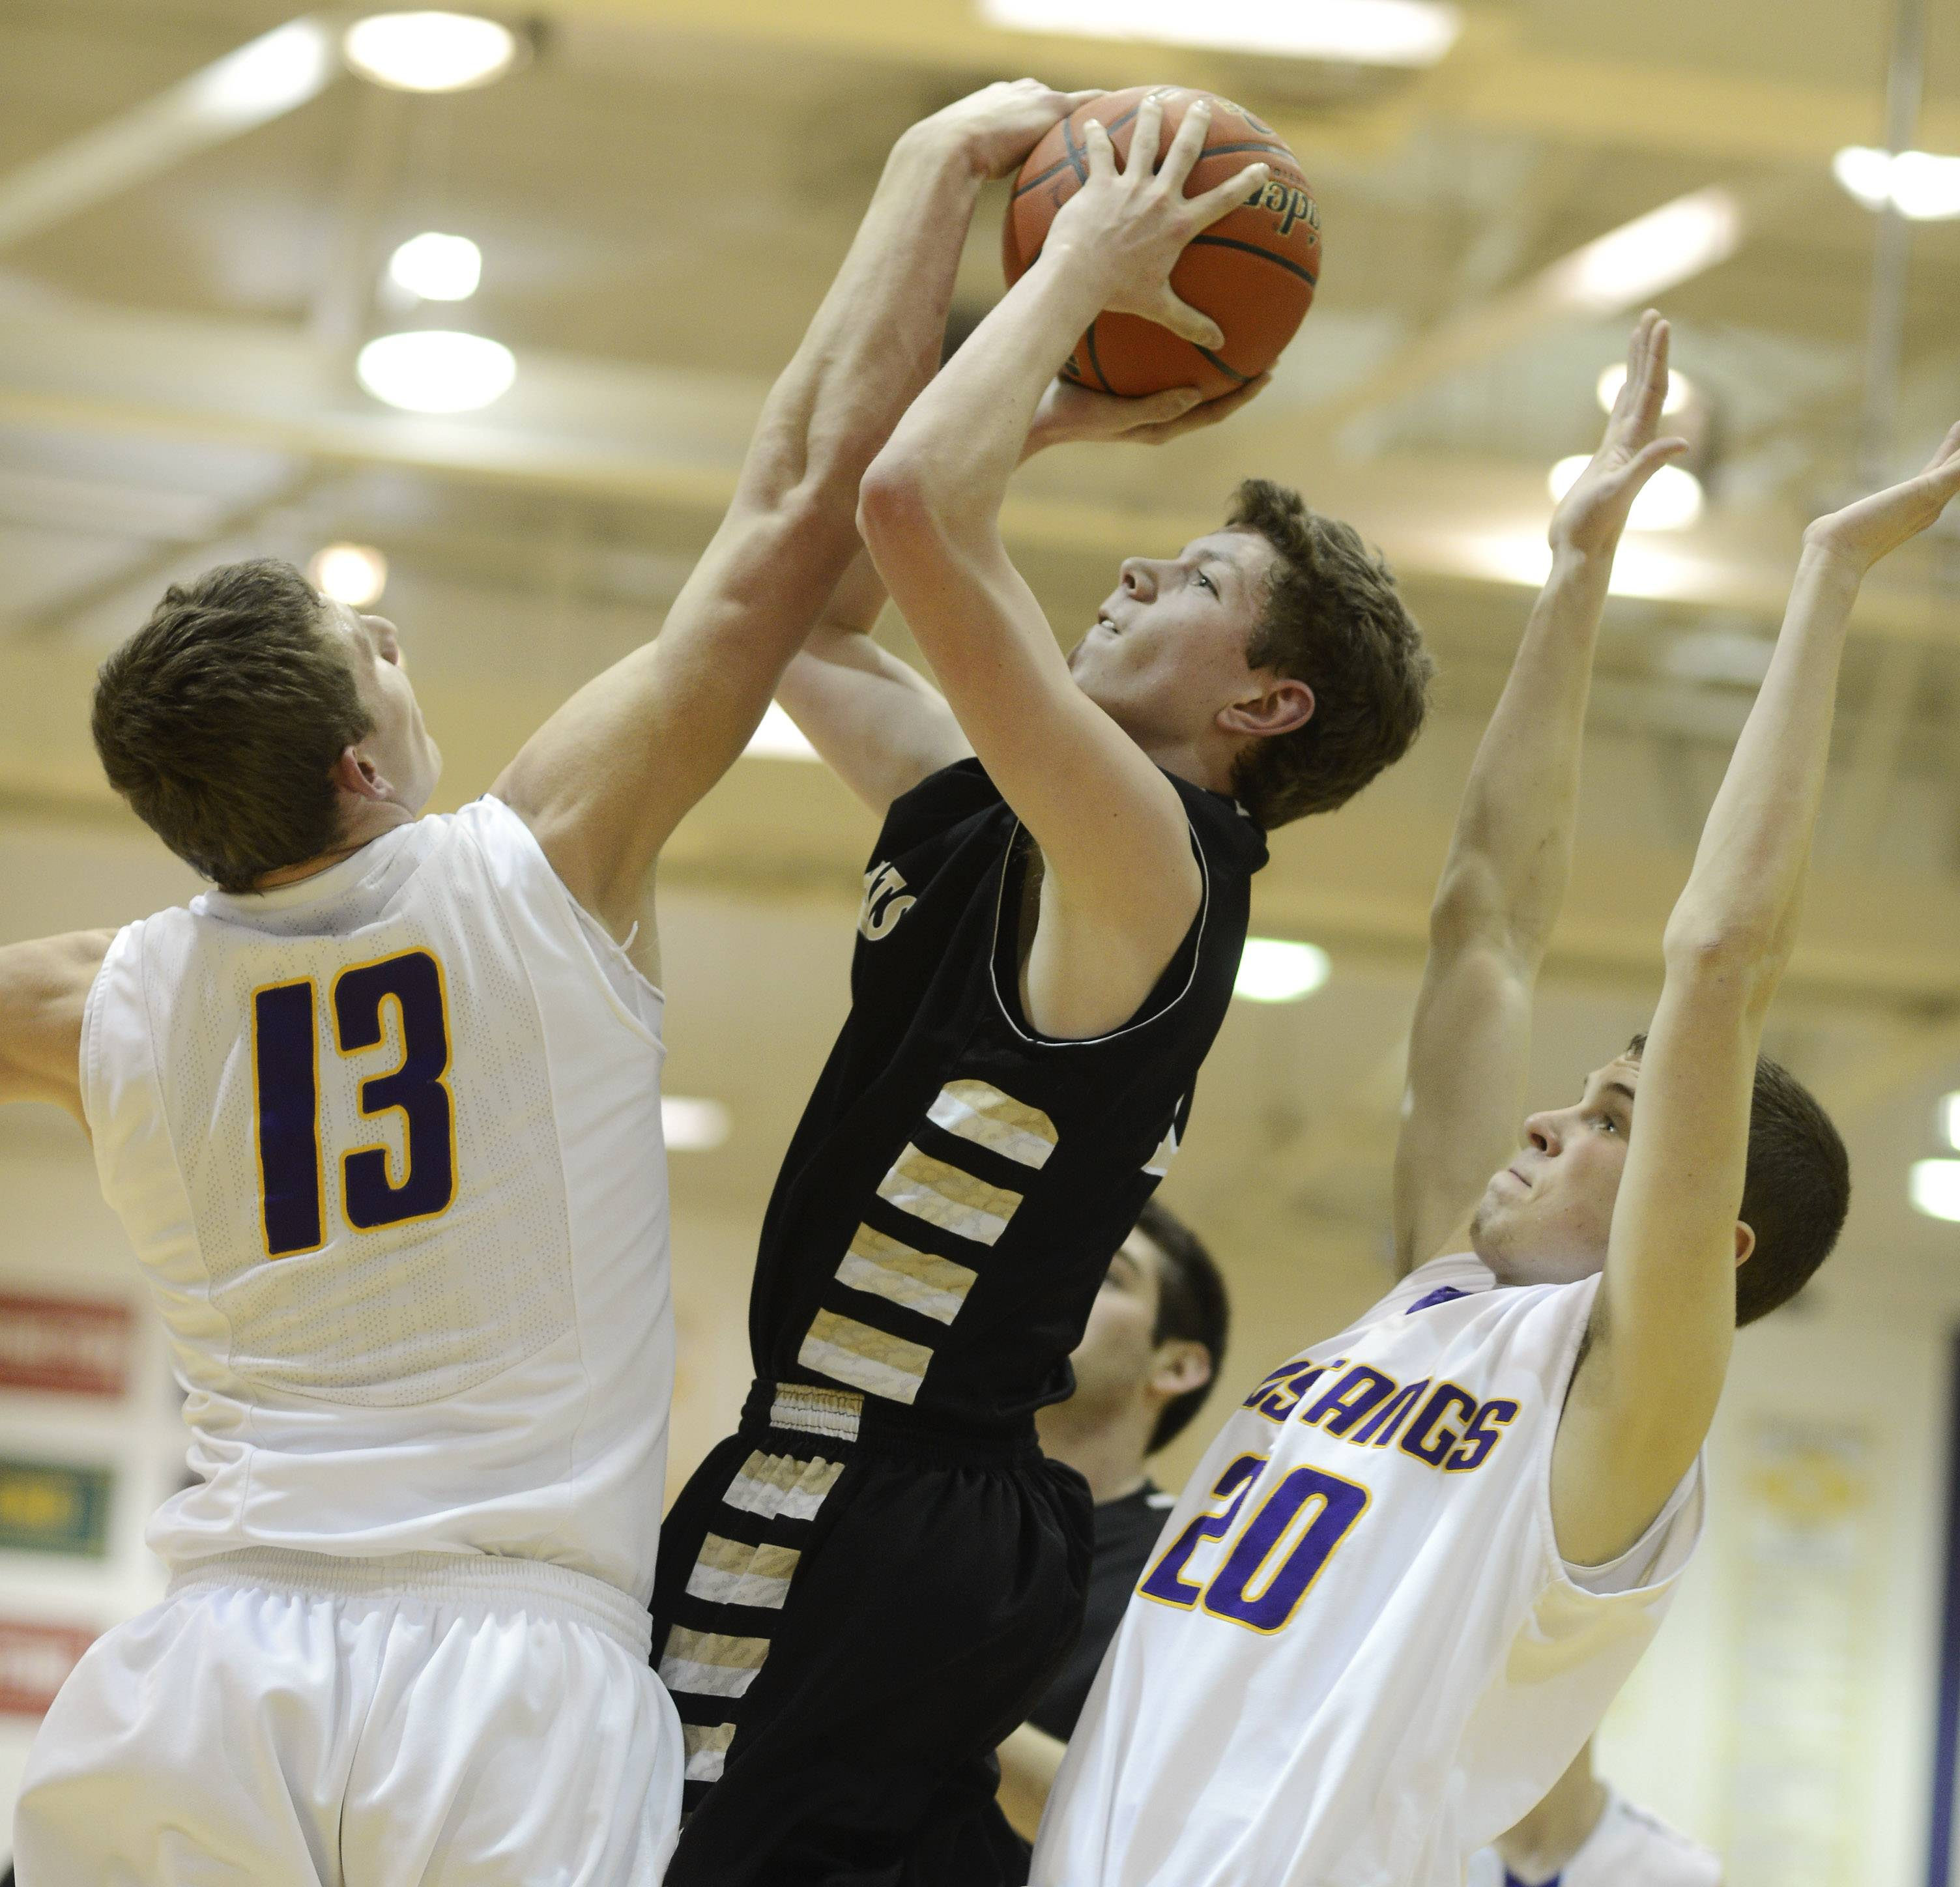 Graylake North's Lucas Buckels attempts a shot against Rolling Meadows defenders Matt Dolan, left, and Charlie Metzger.